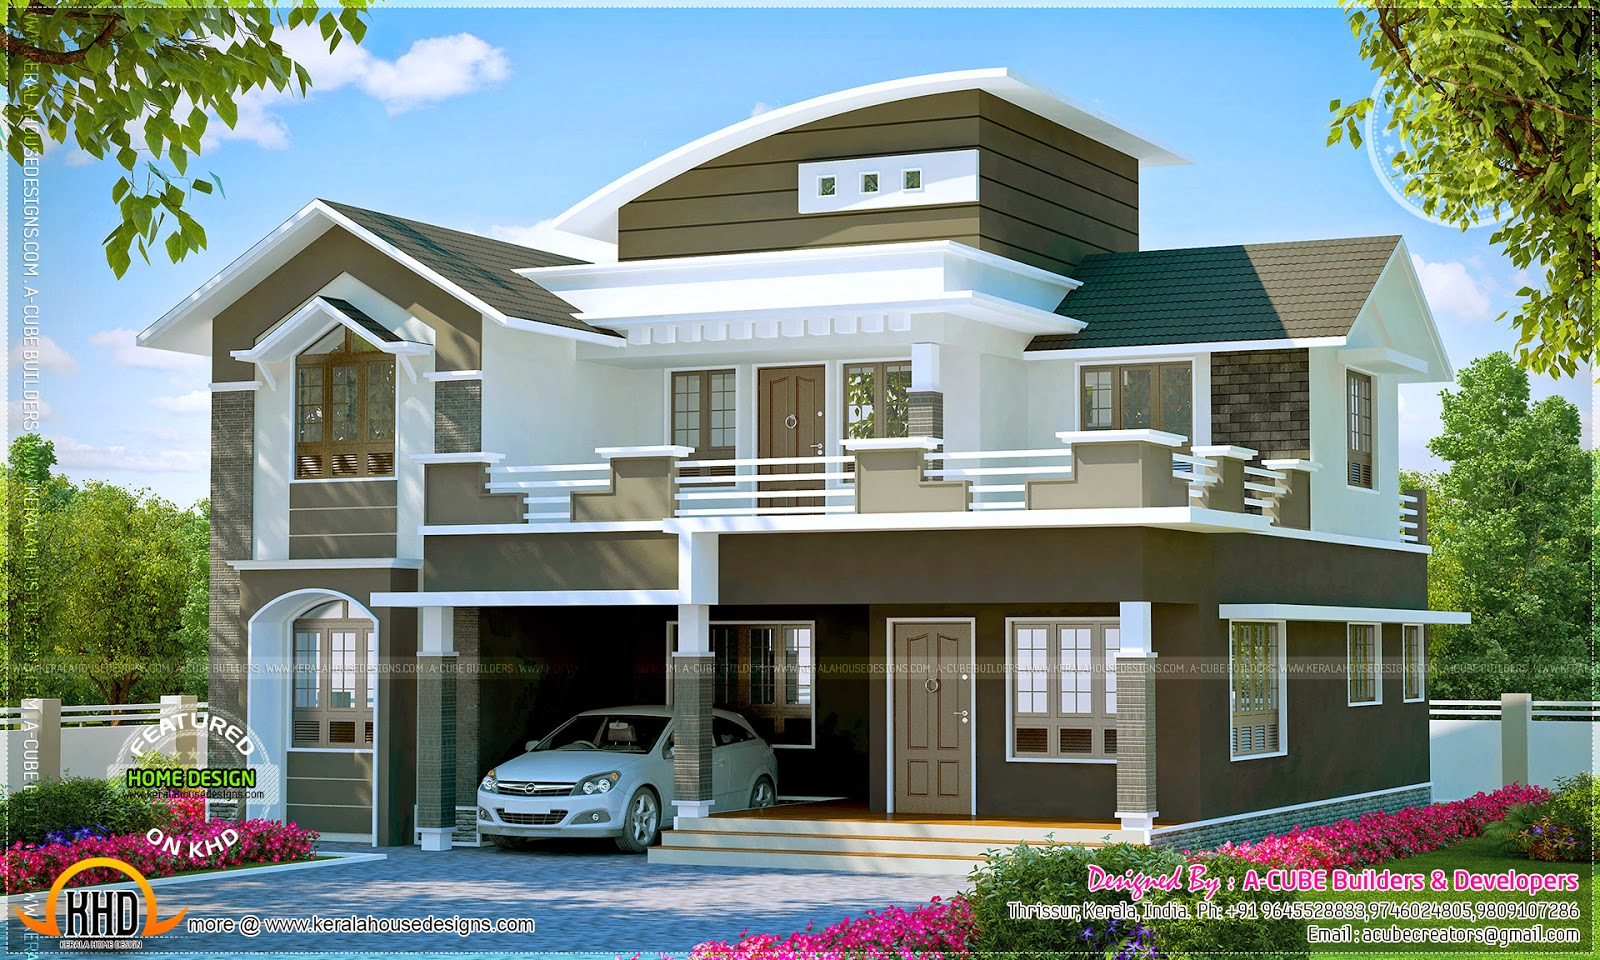 Well designed villa exteriors kerala home design and for Home design images